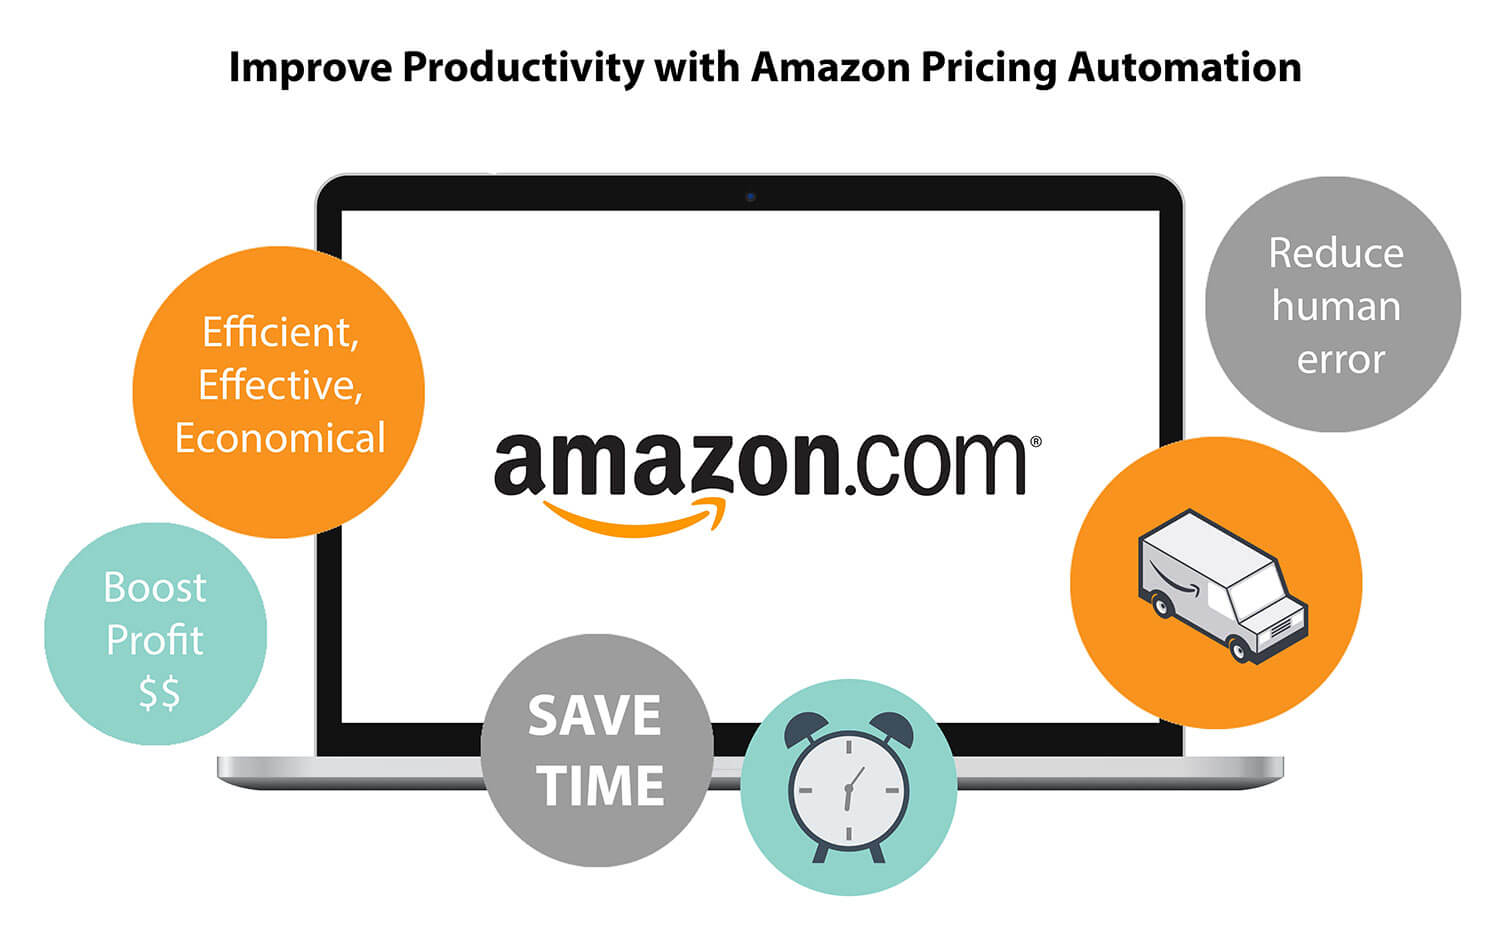 improve productivity with amazon pricing automation